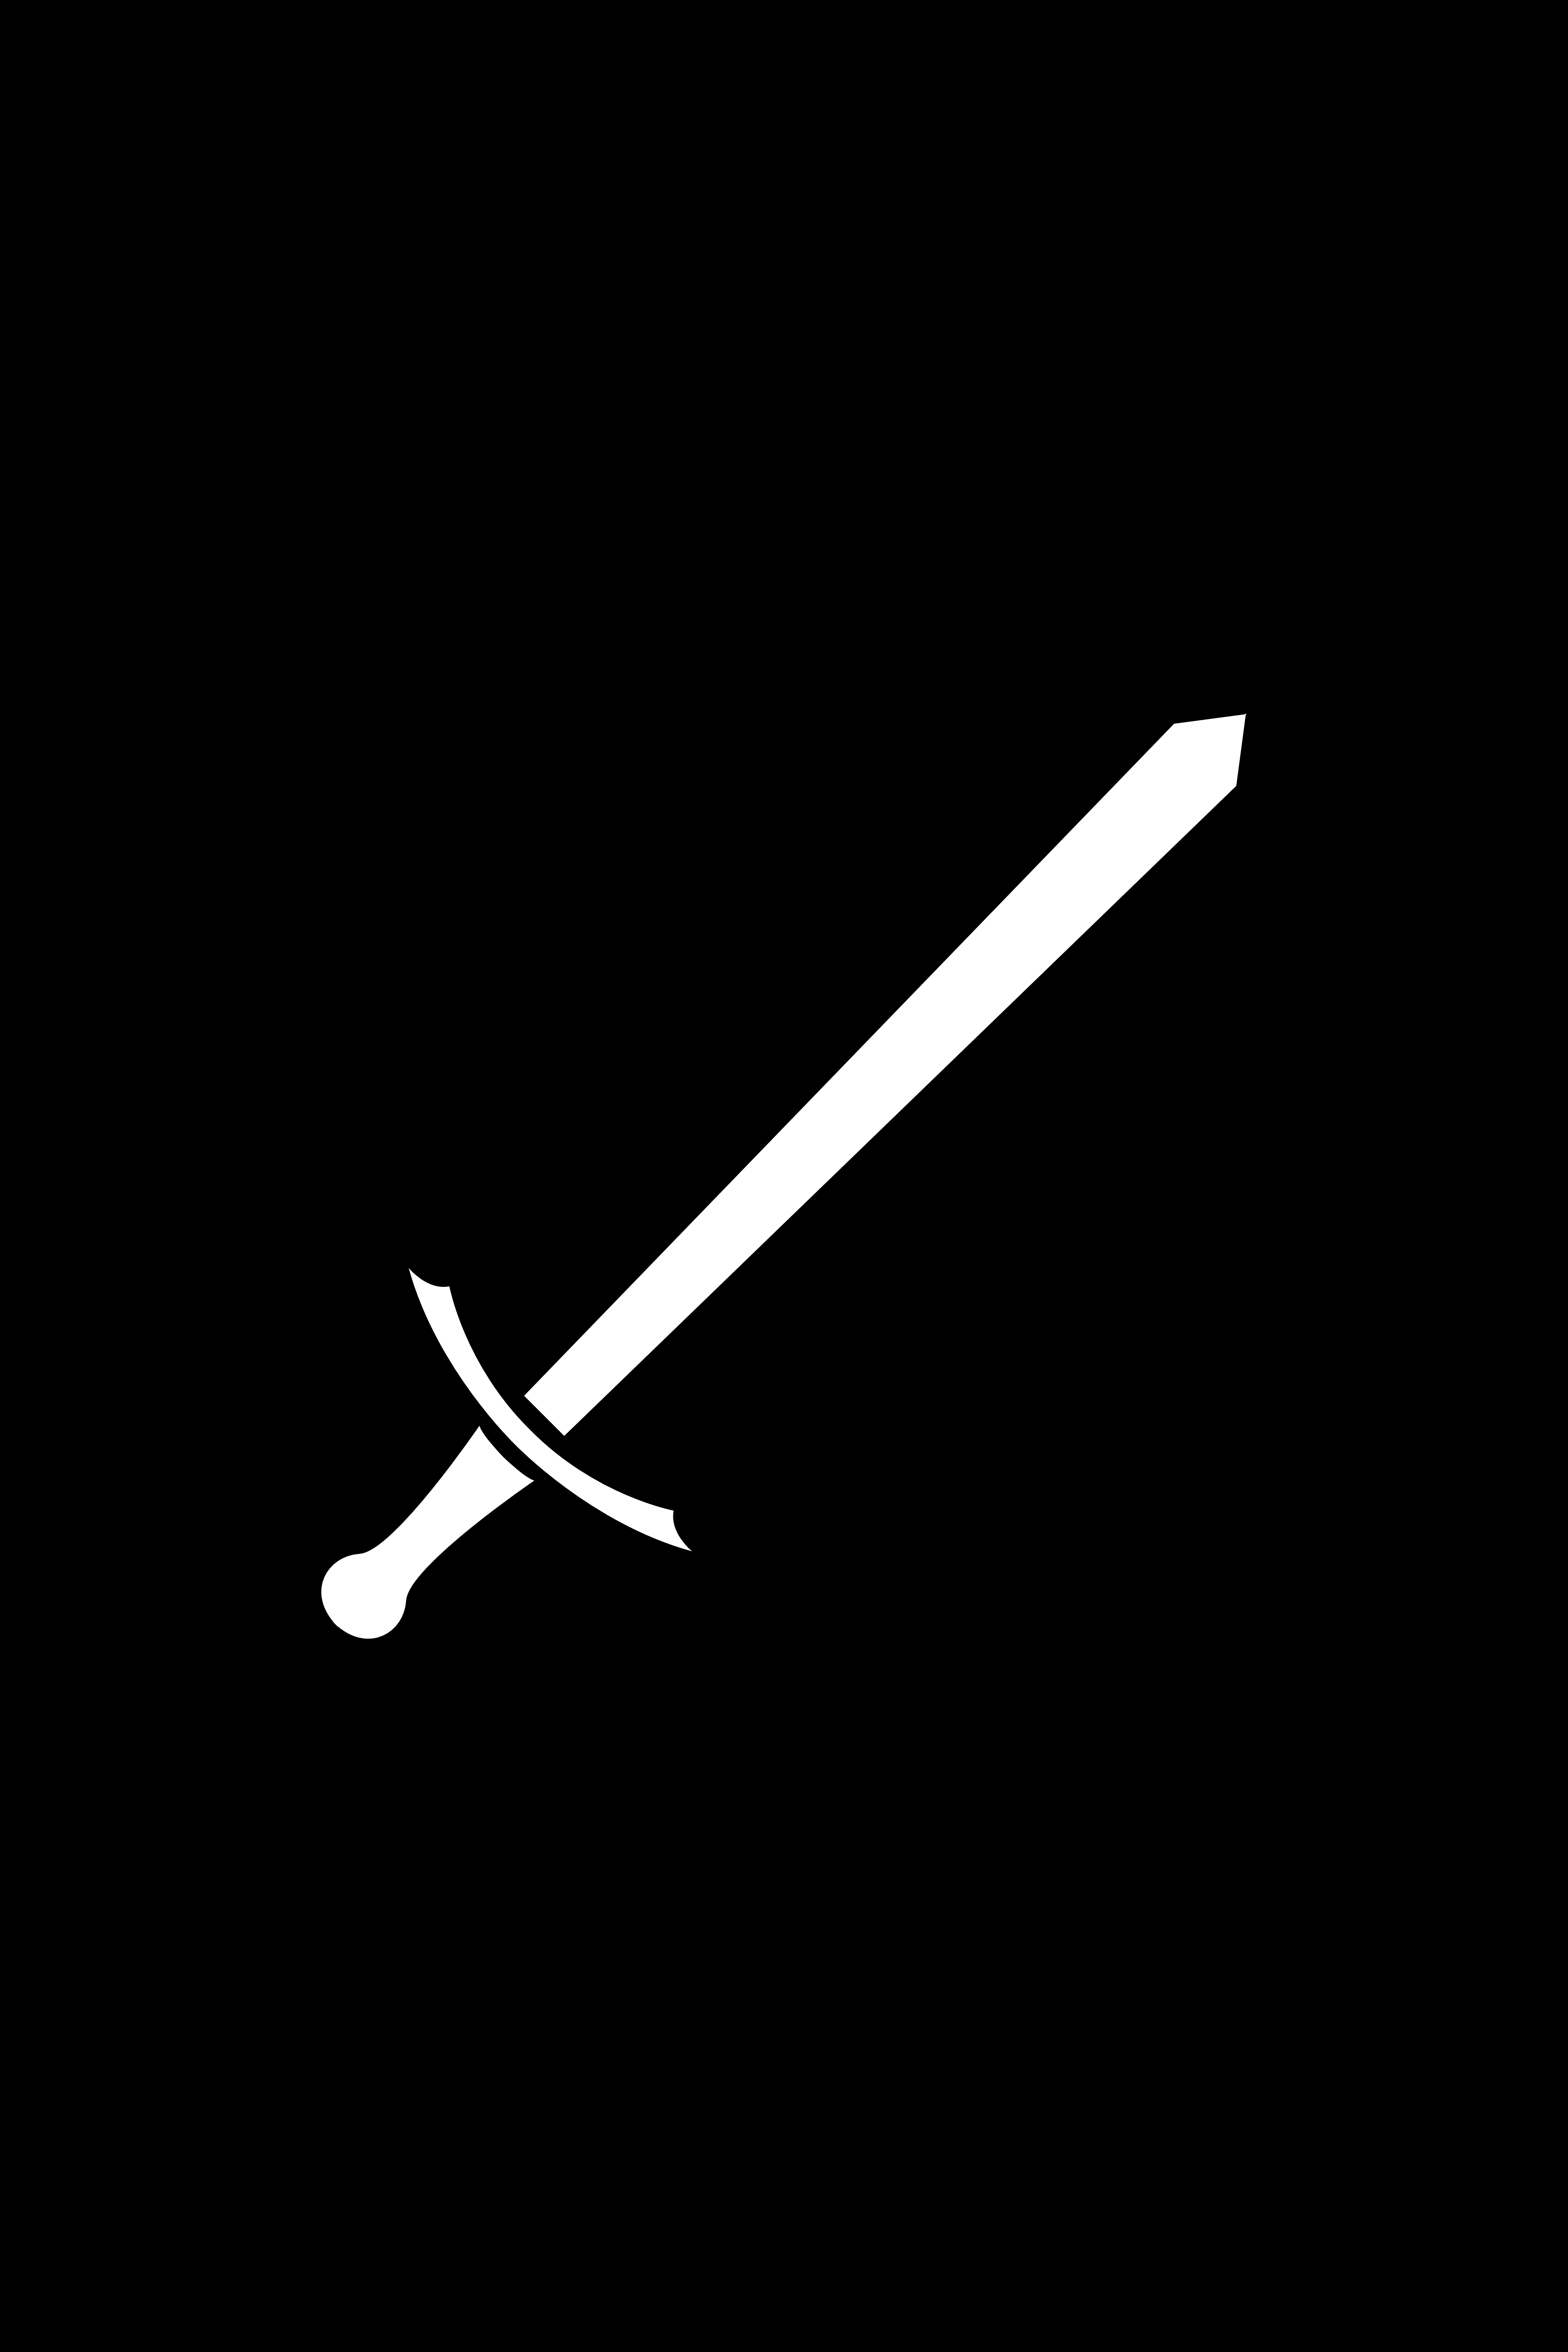 Attack Battle Swords Icon Download On Iconfinder Icon Sword Military Swords